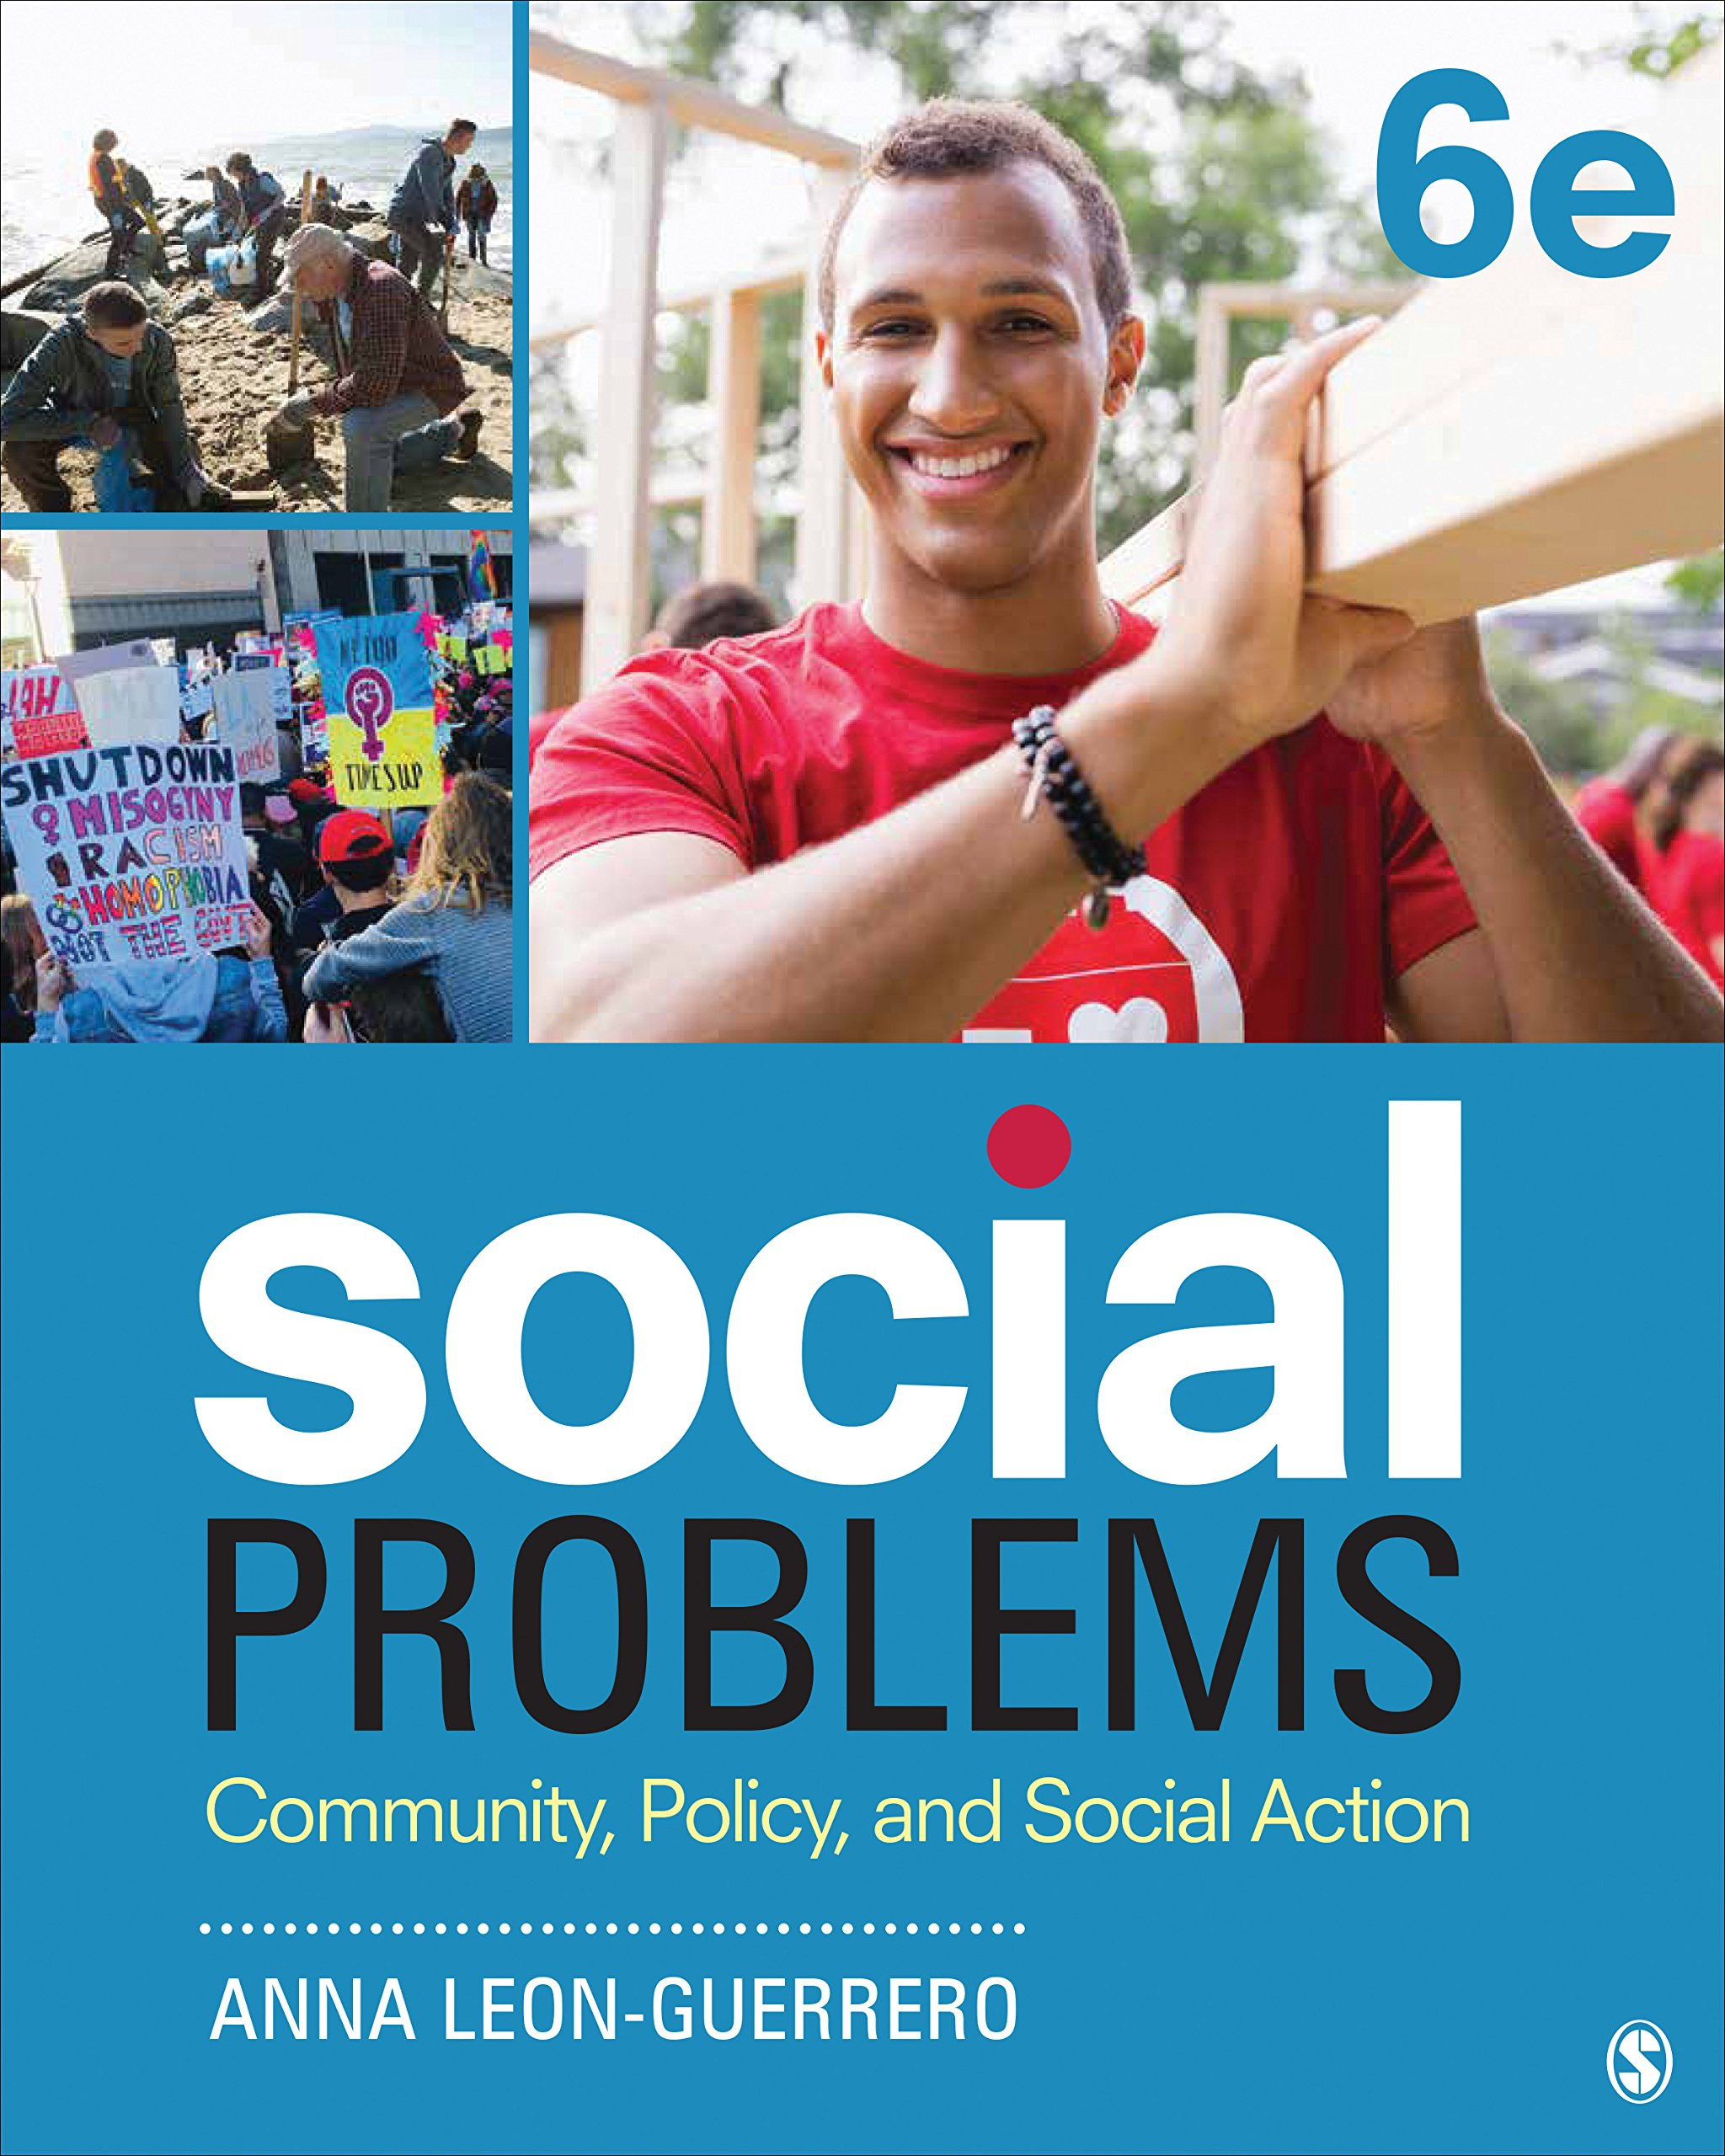 Social Problems: Community, Policy, and Social Action by SAGE Publications, Inc